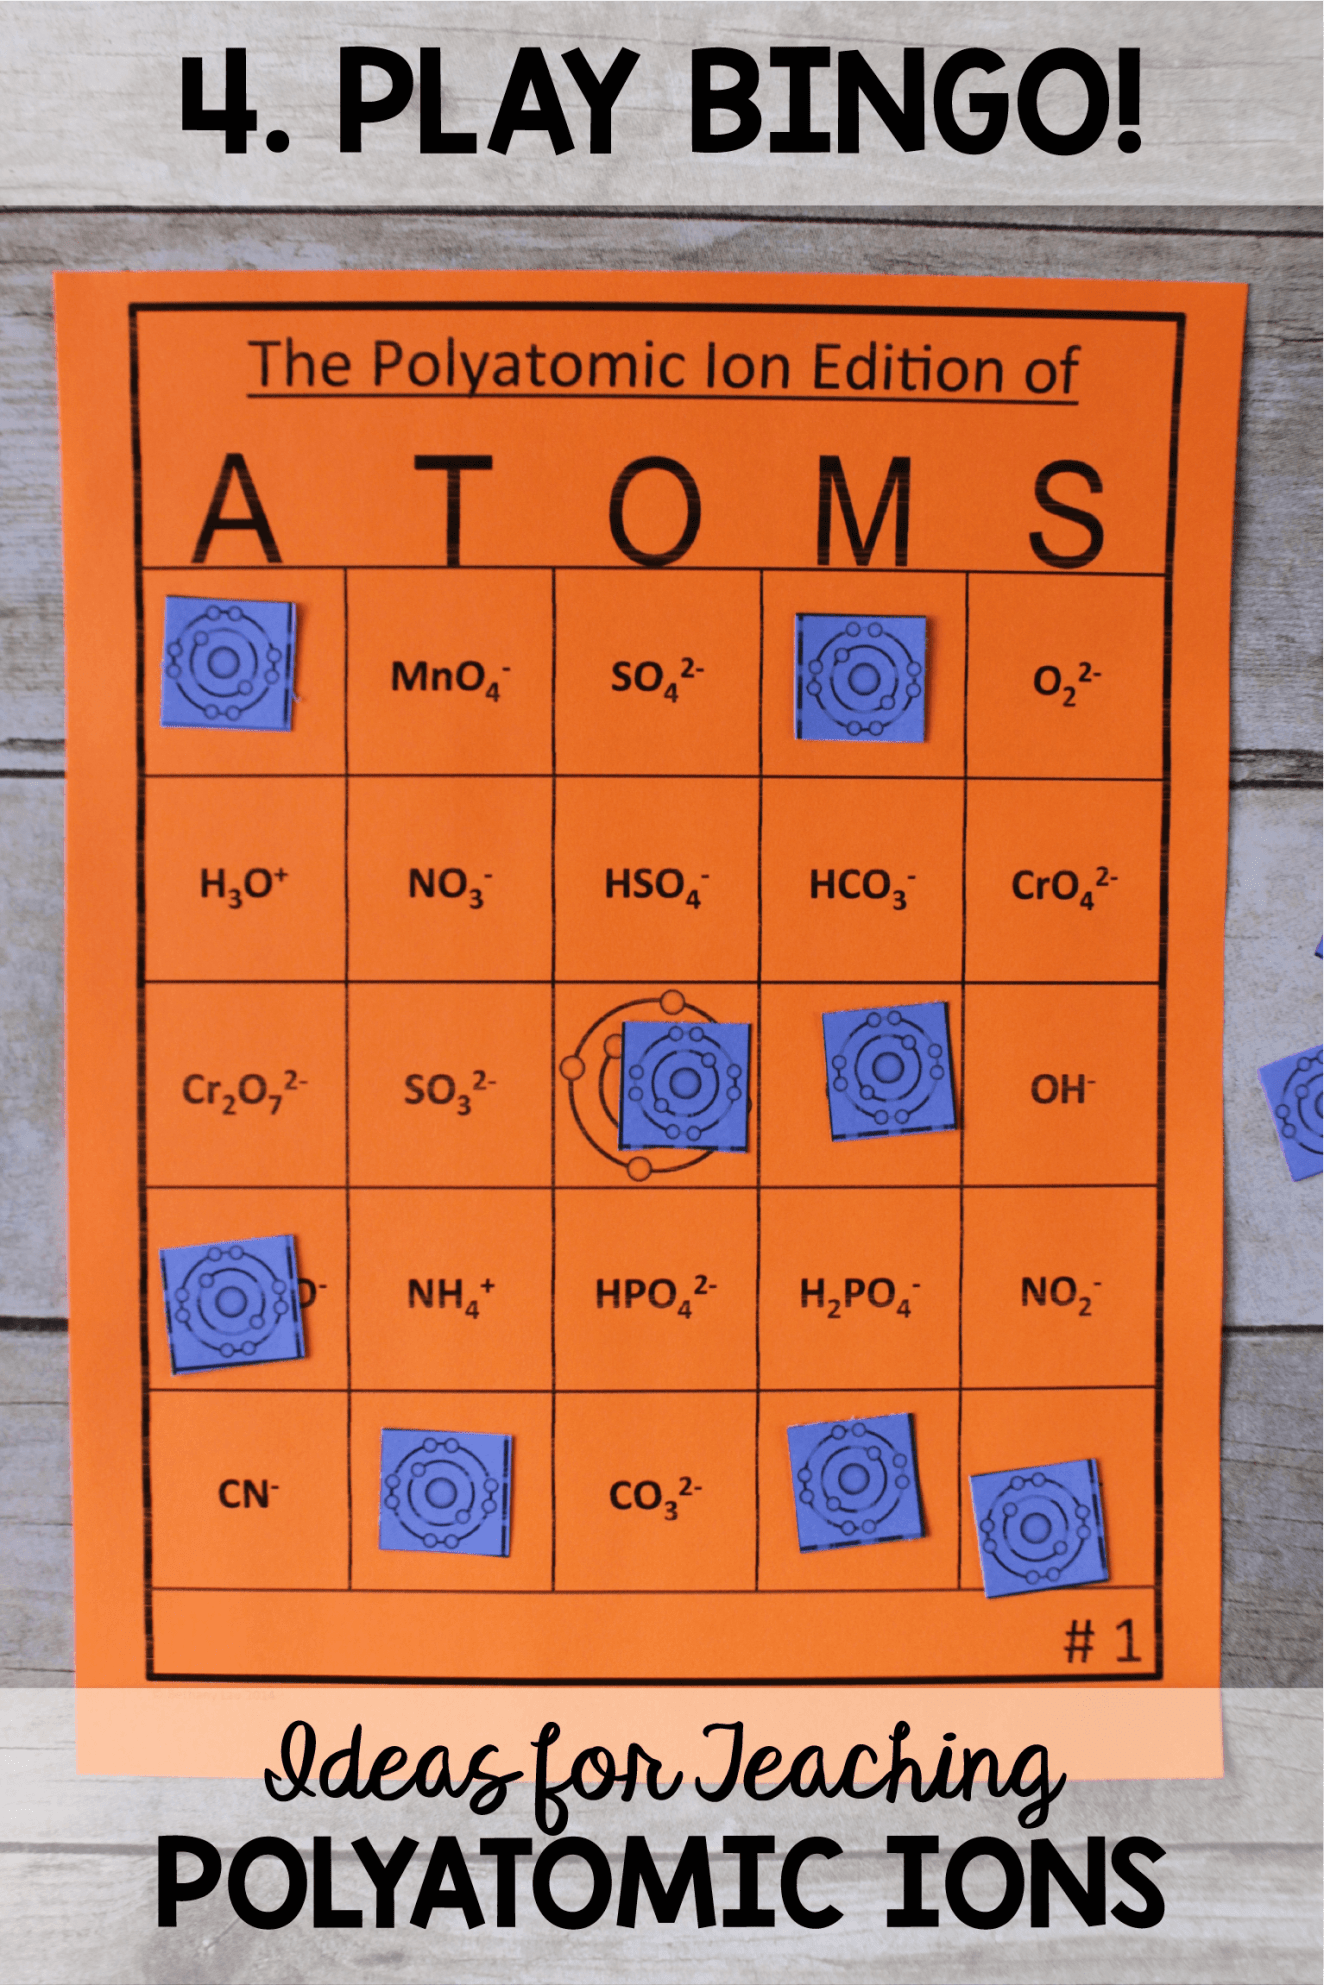 Polyatomic Ion Chemistry Bingo Atoms Game With Images